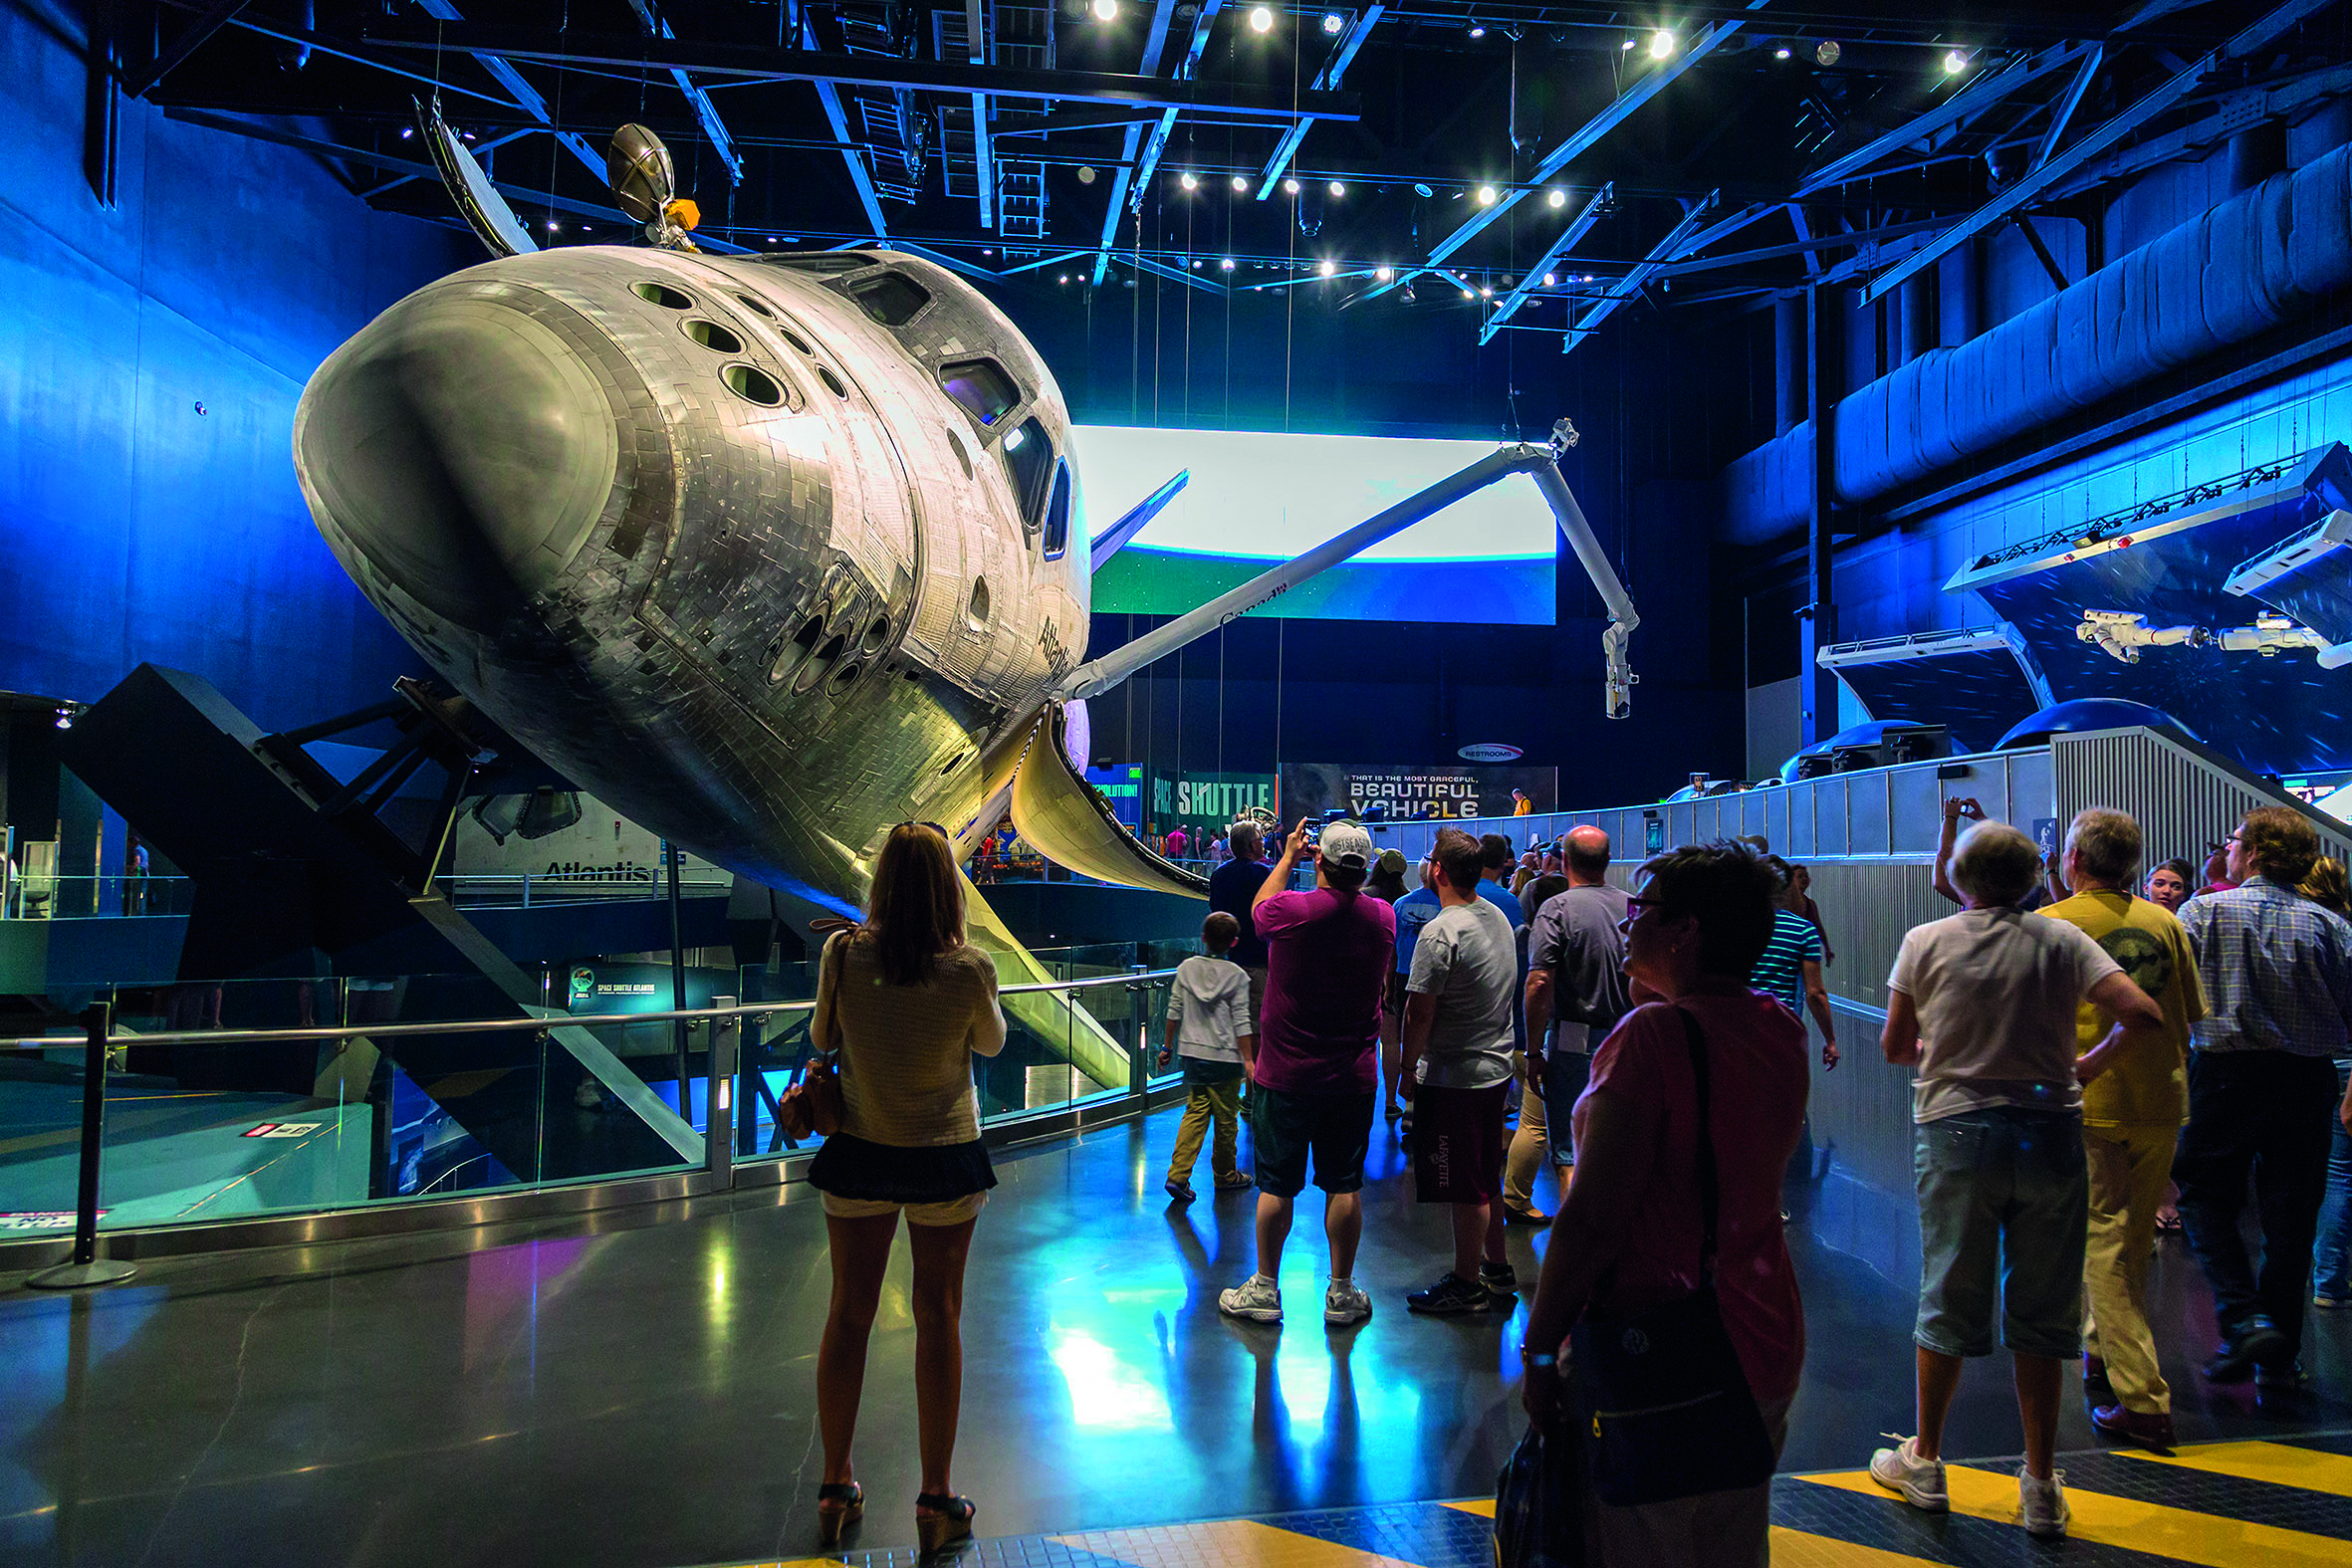 Adults and children alike marvel at the Space Shuttle at the Kennedy Space Centre.